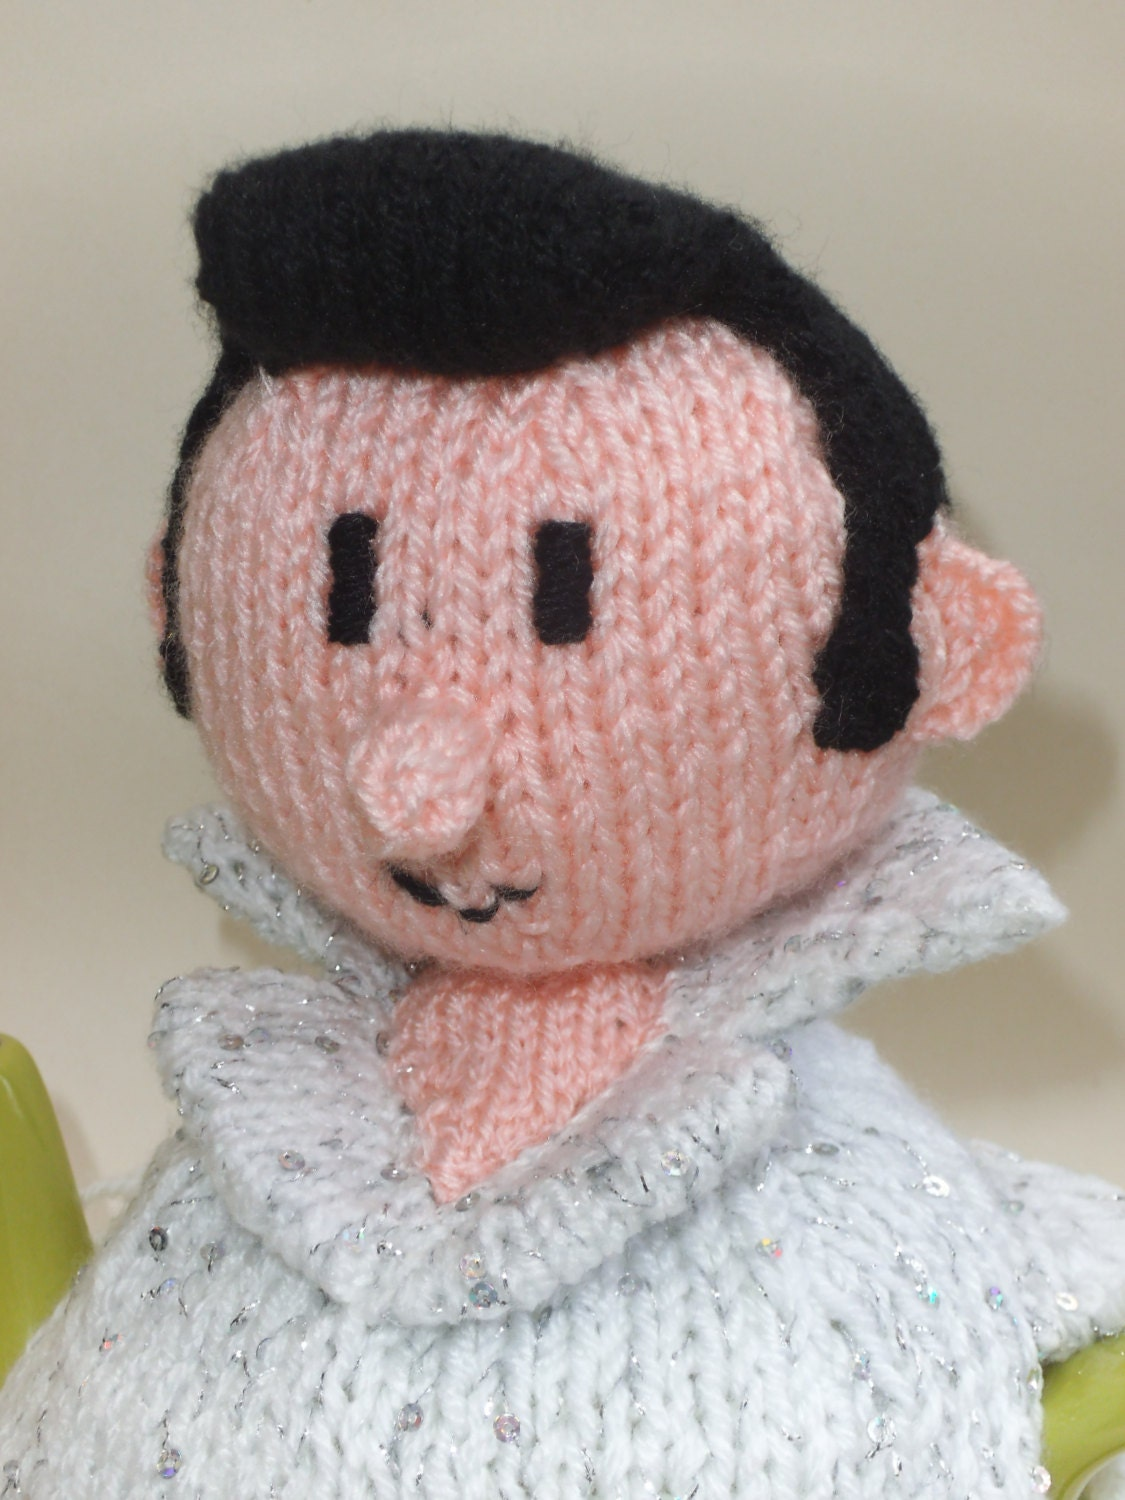 Elvis Presley Tea Cosy Knitting Pattern to Knit Your Own ...